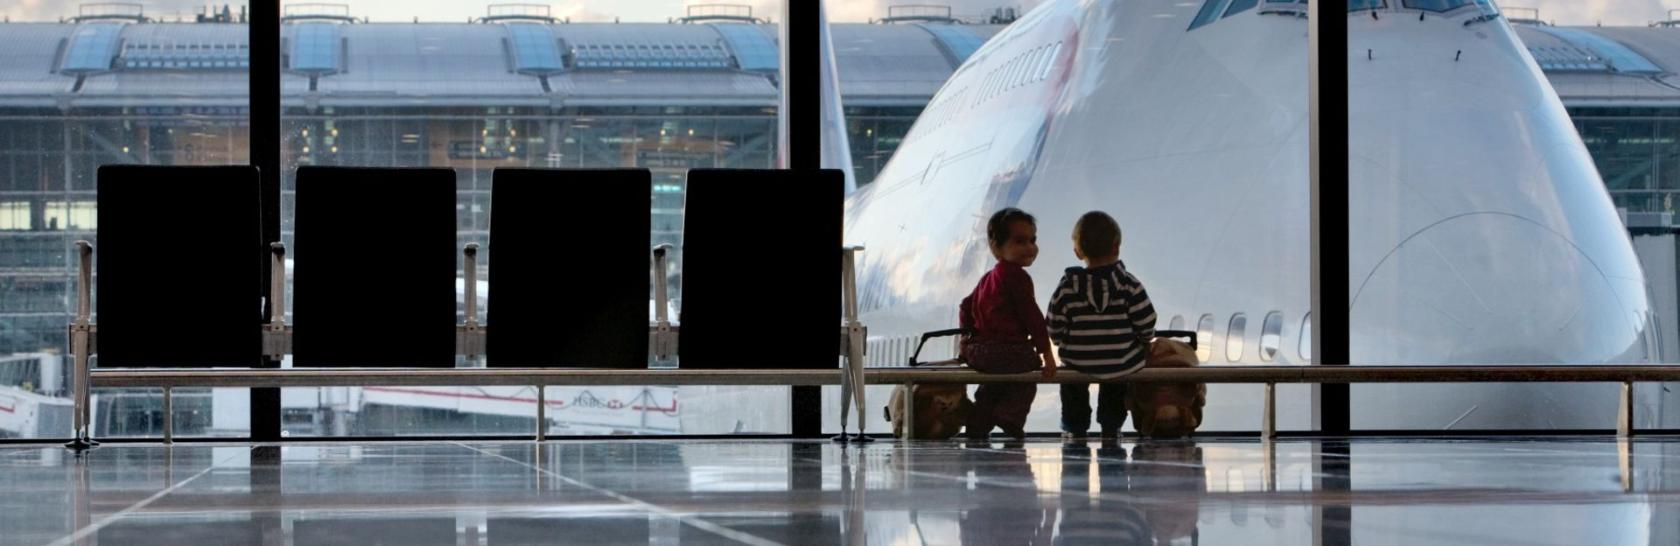 Kids looking outside airport window